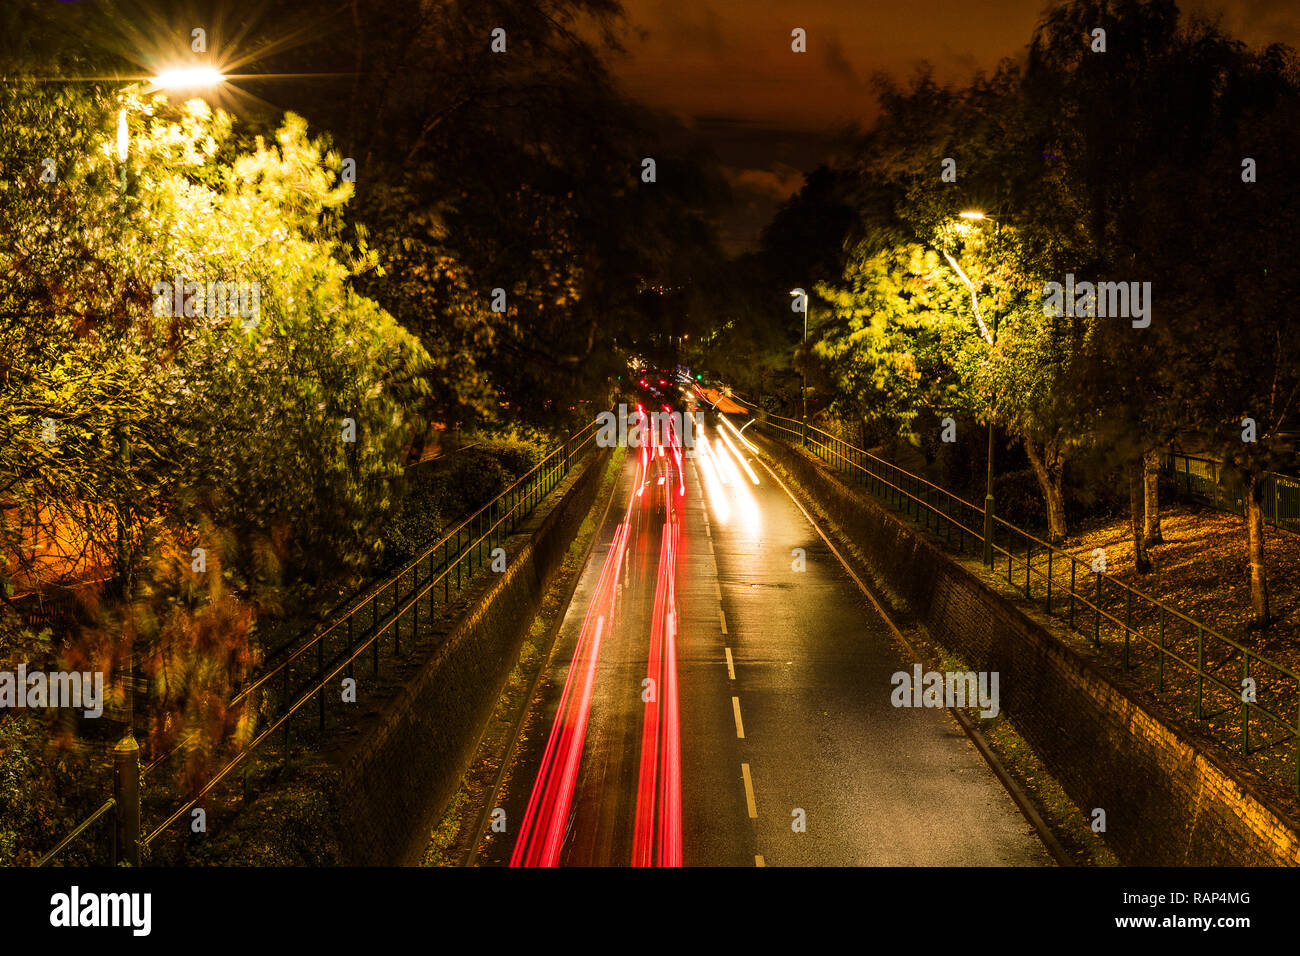 LED street lights and LED car head lights producing intense glare, reflection, and visual disturbance on the highway at night - Stock Image